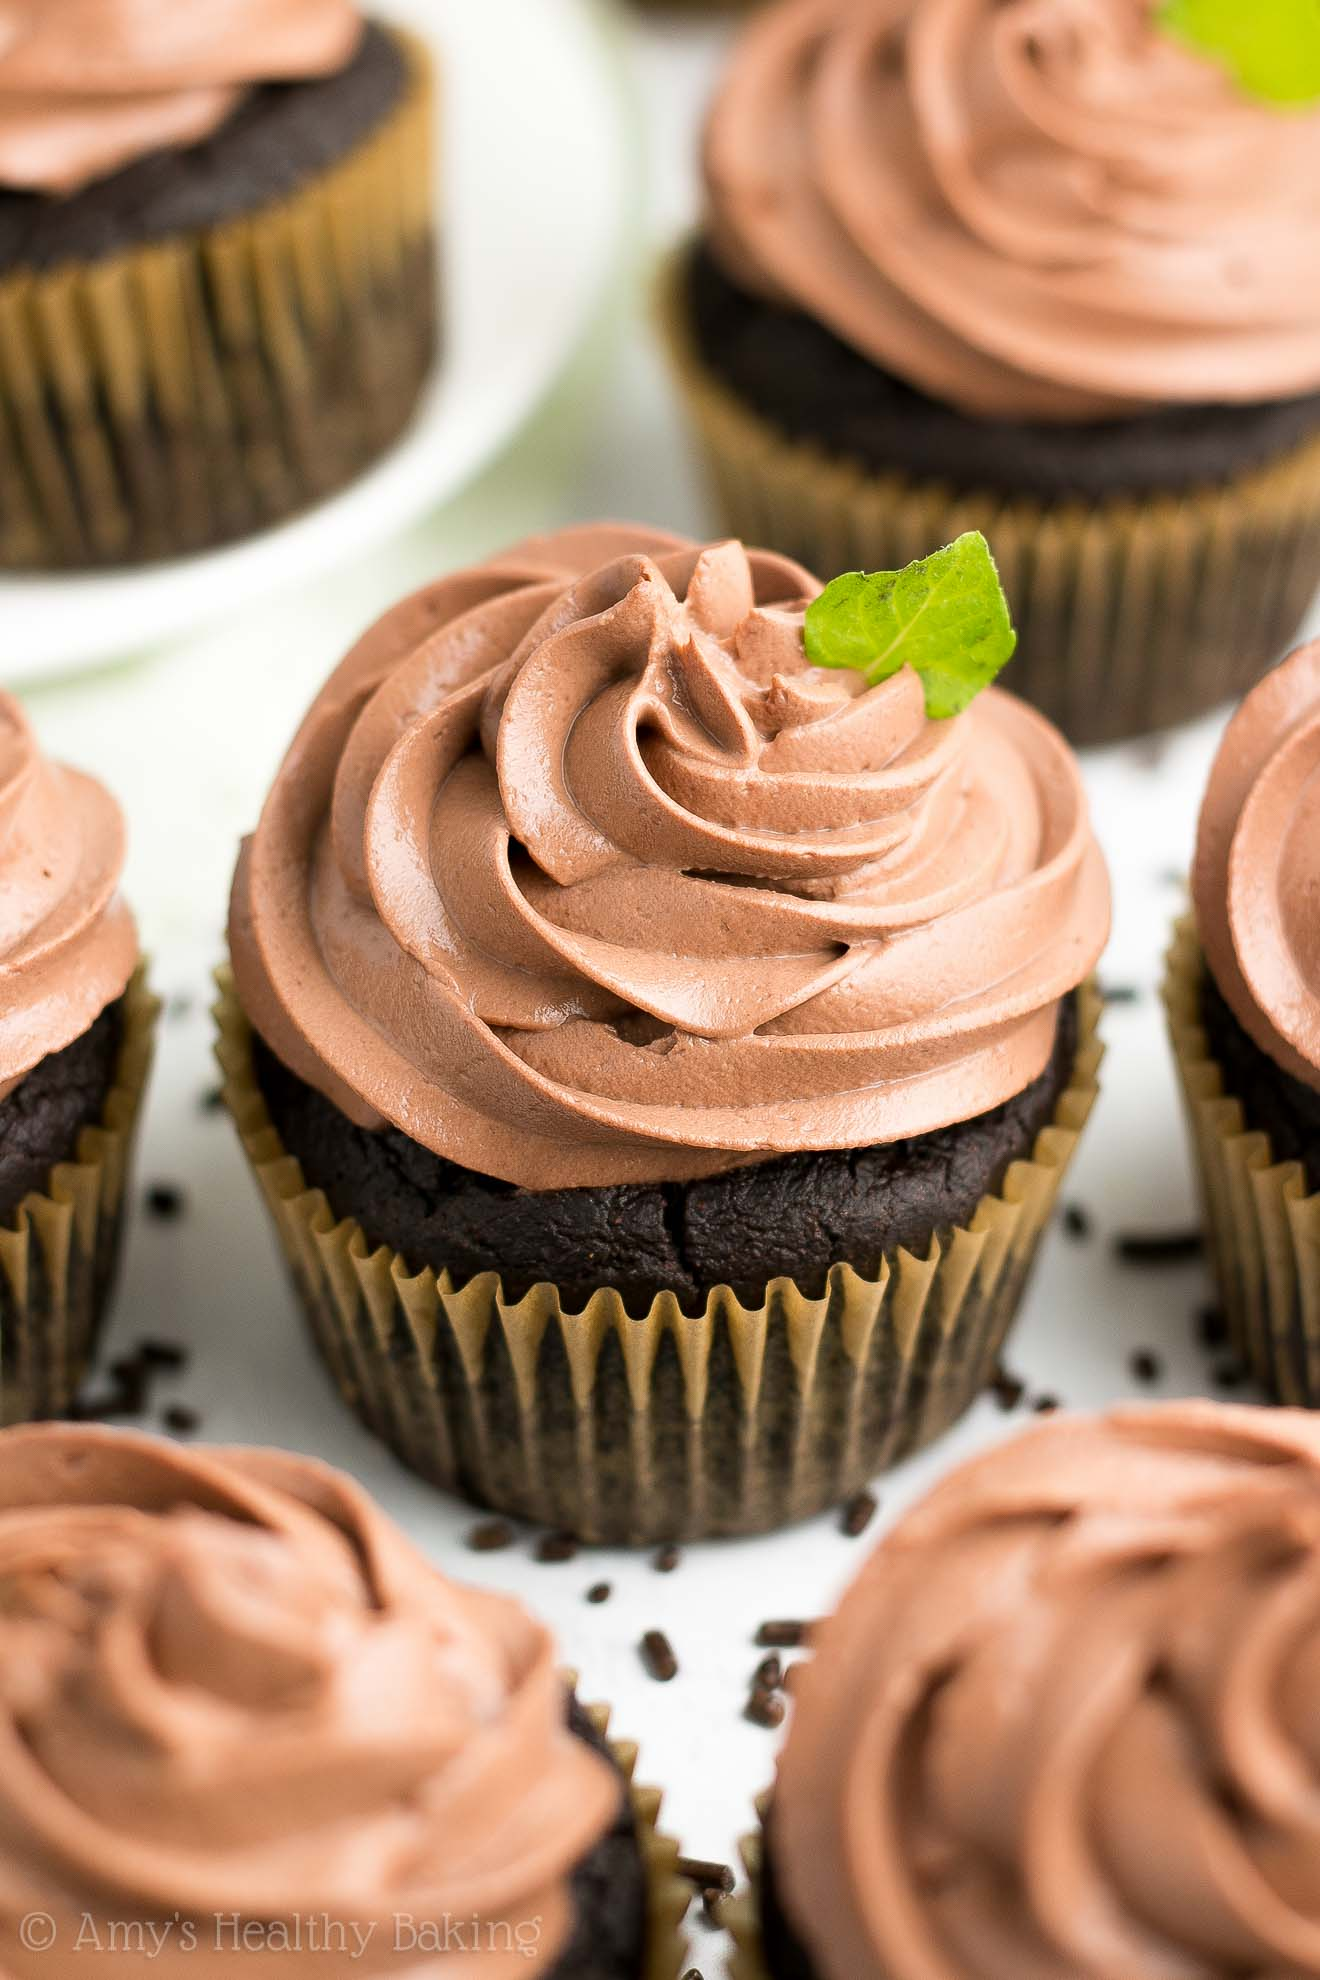 Healthy Sugar-Free Mint Chocolate Cupcakes with Chocolate Greek Yogurt Frosting